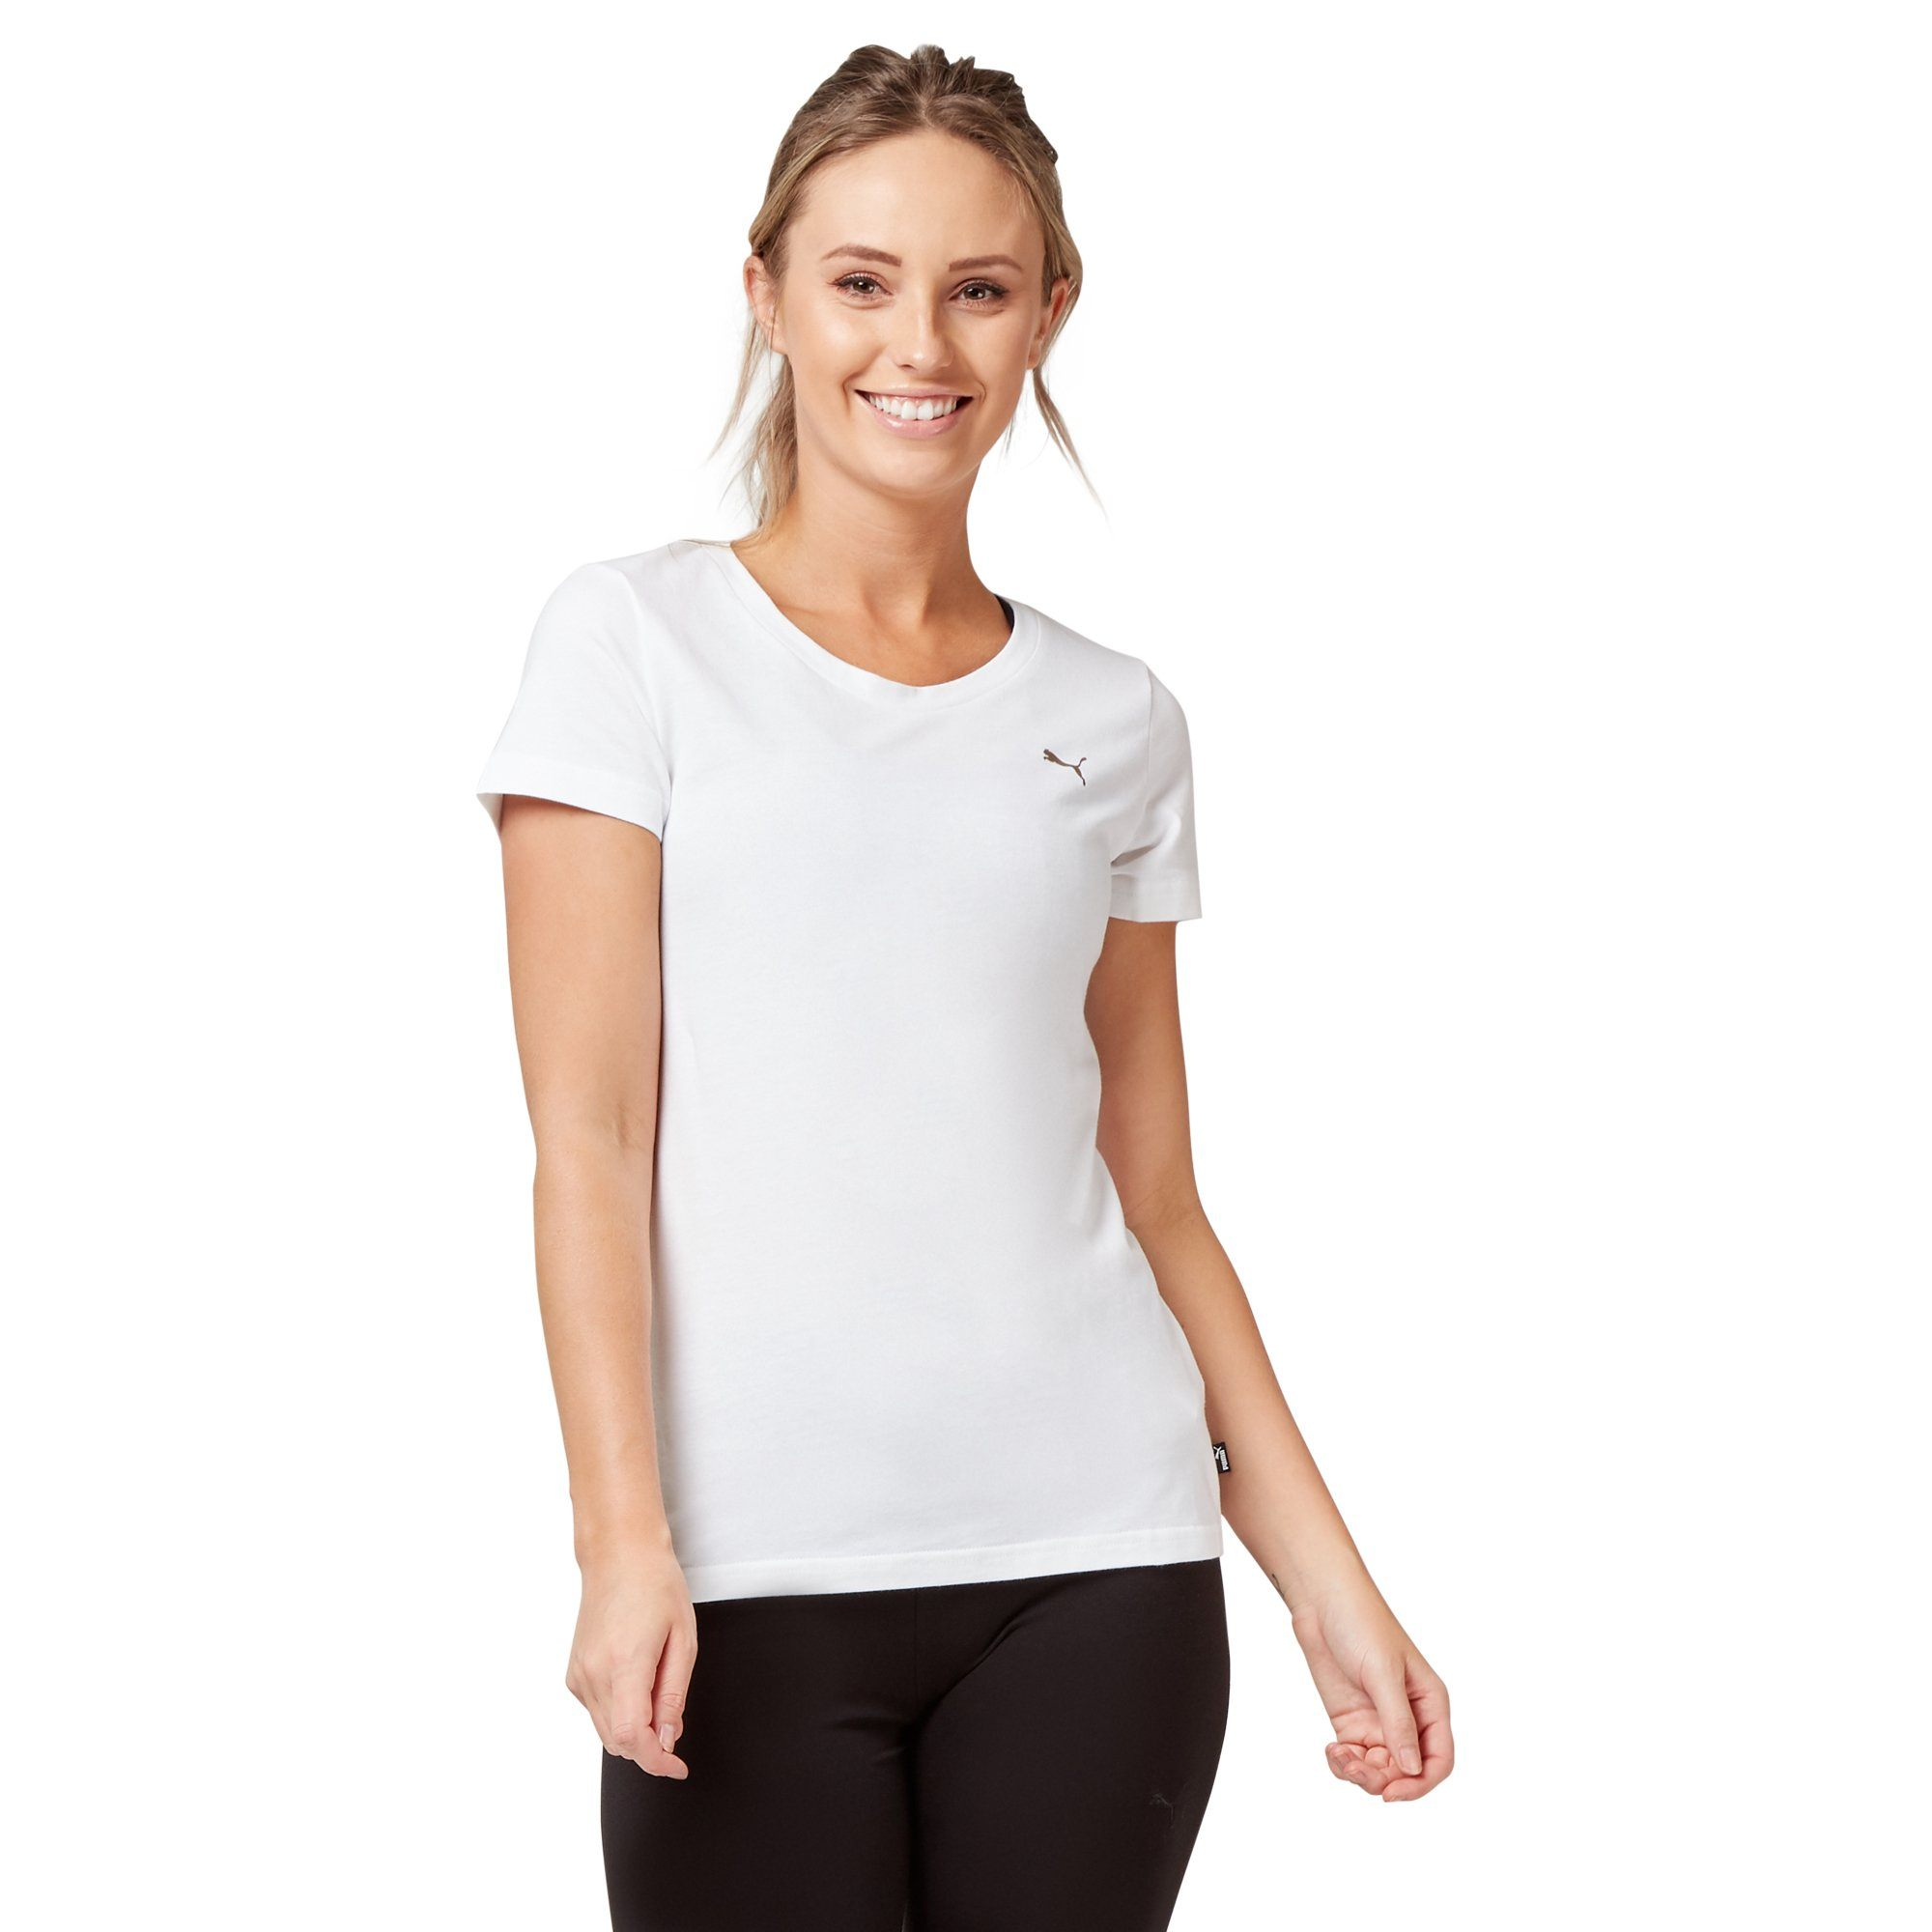 Puma Women's Athletic Tee - White Apparel Puma  (2122609393723)